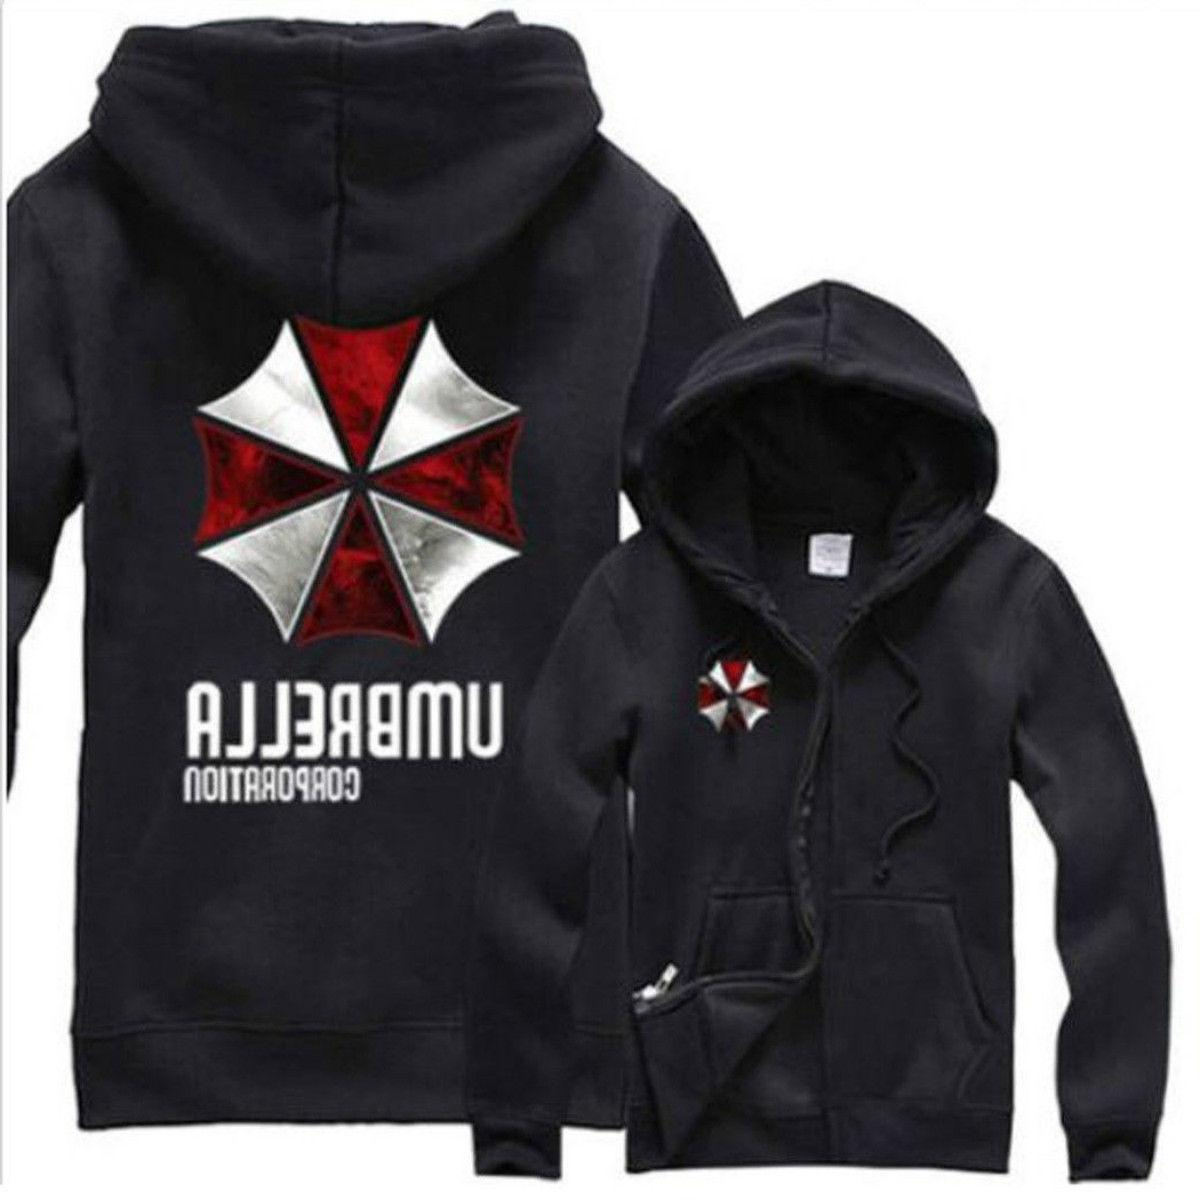 New Resident Evil Umbrella Corporation Hoodie Sweater Cosplay Jacket Coat #a